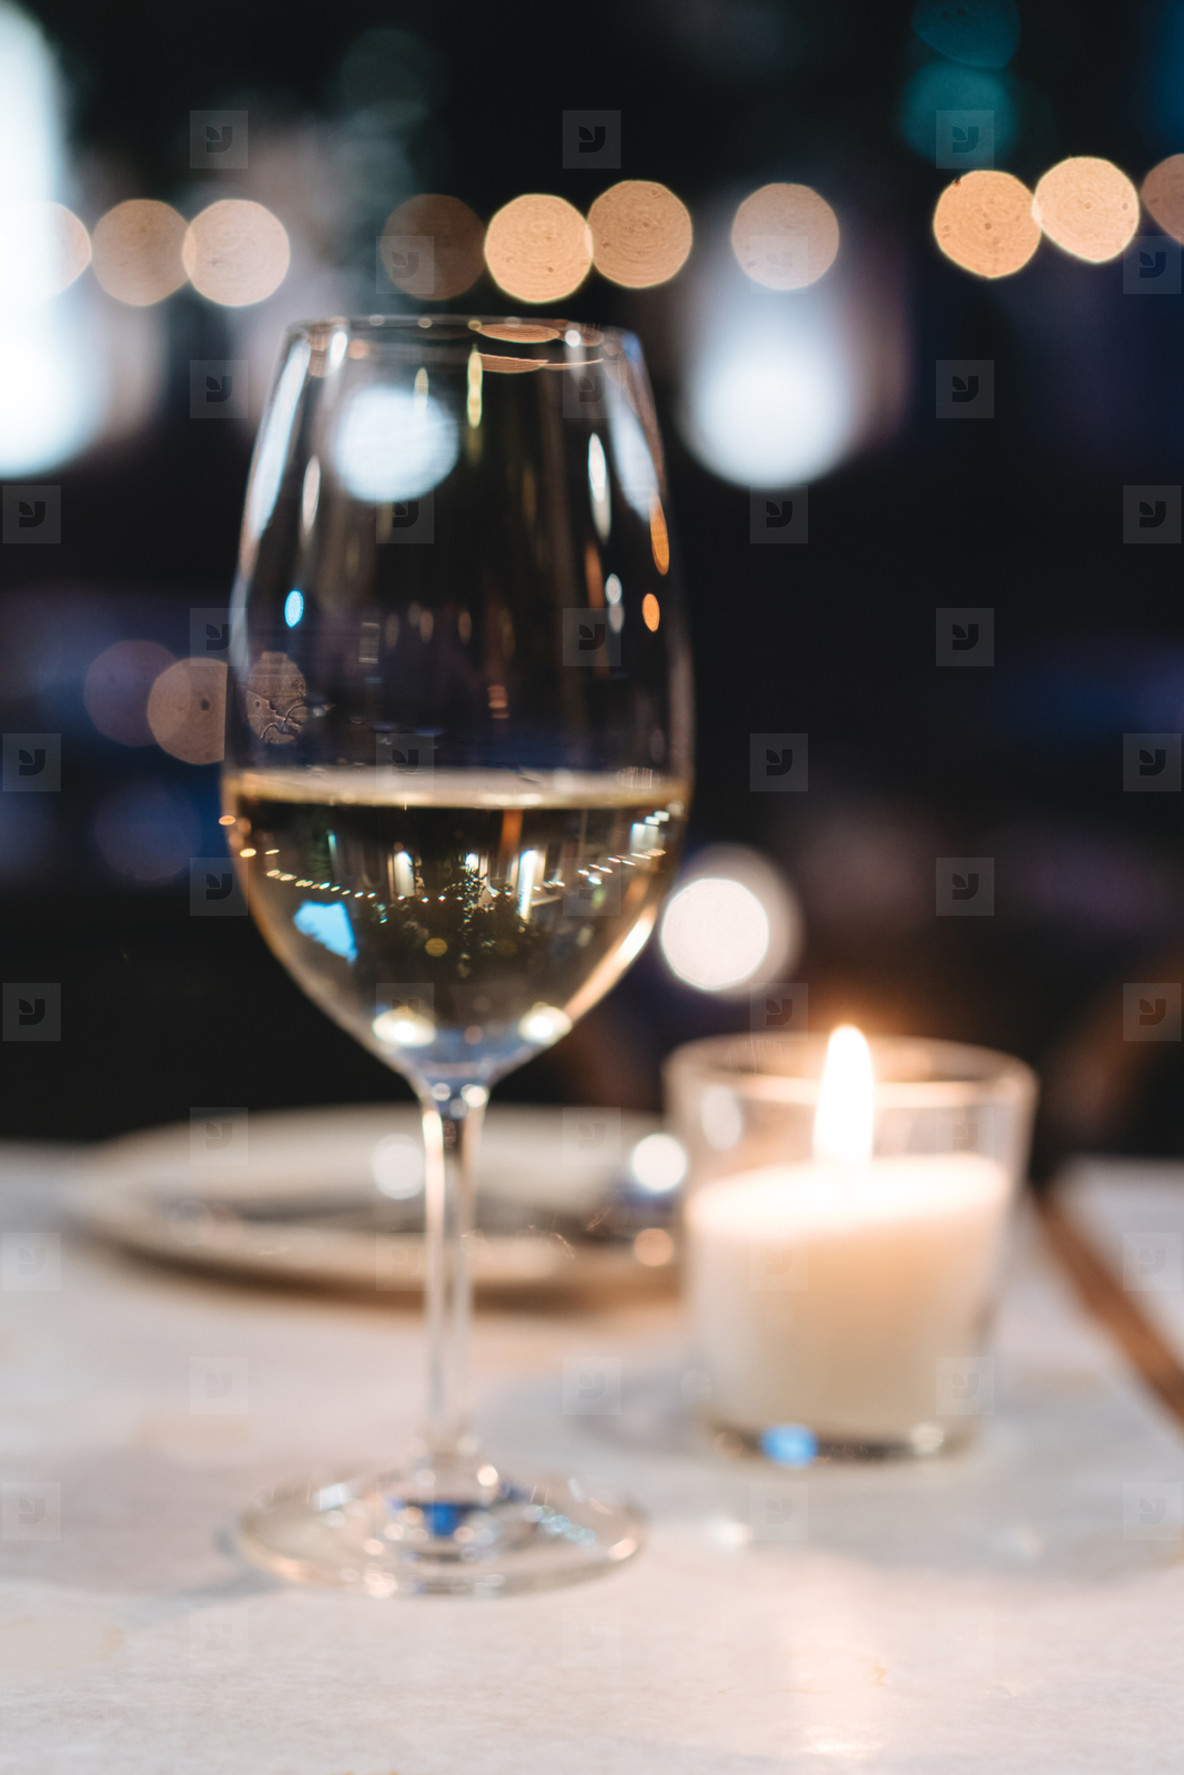 a glass of wine on the table